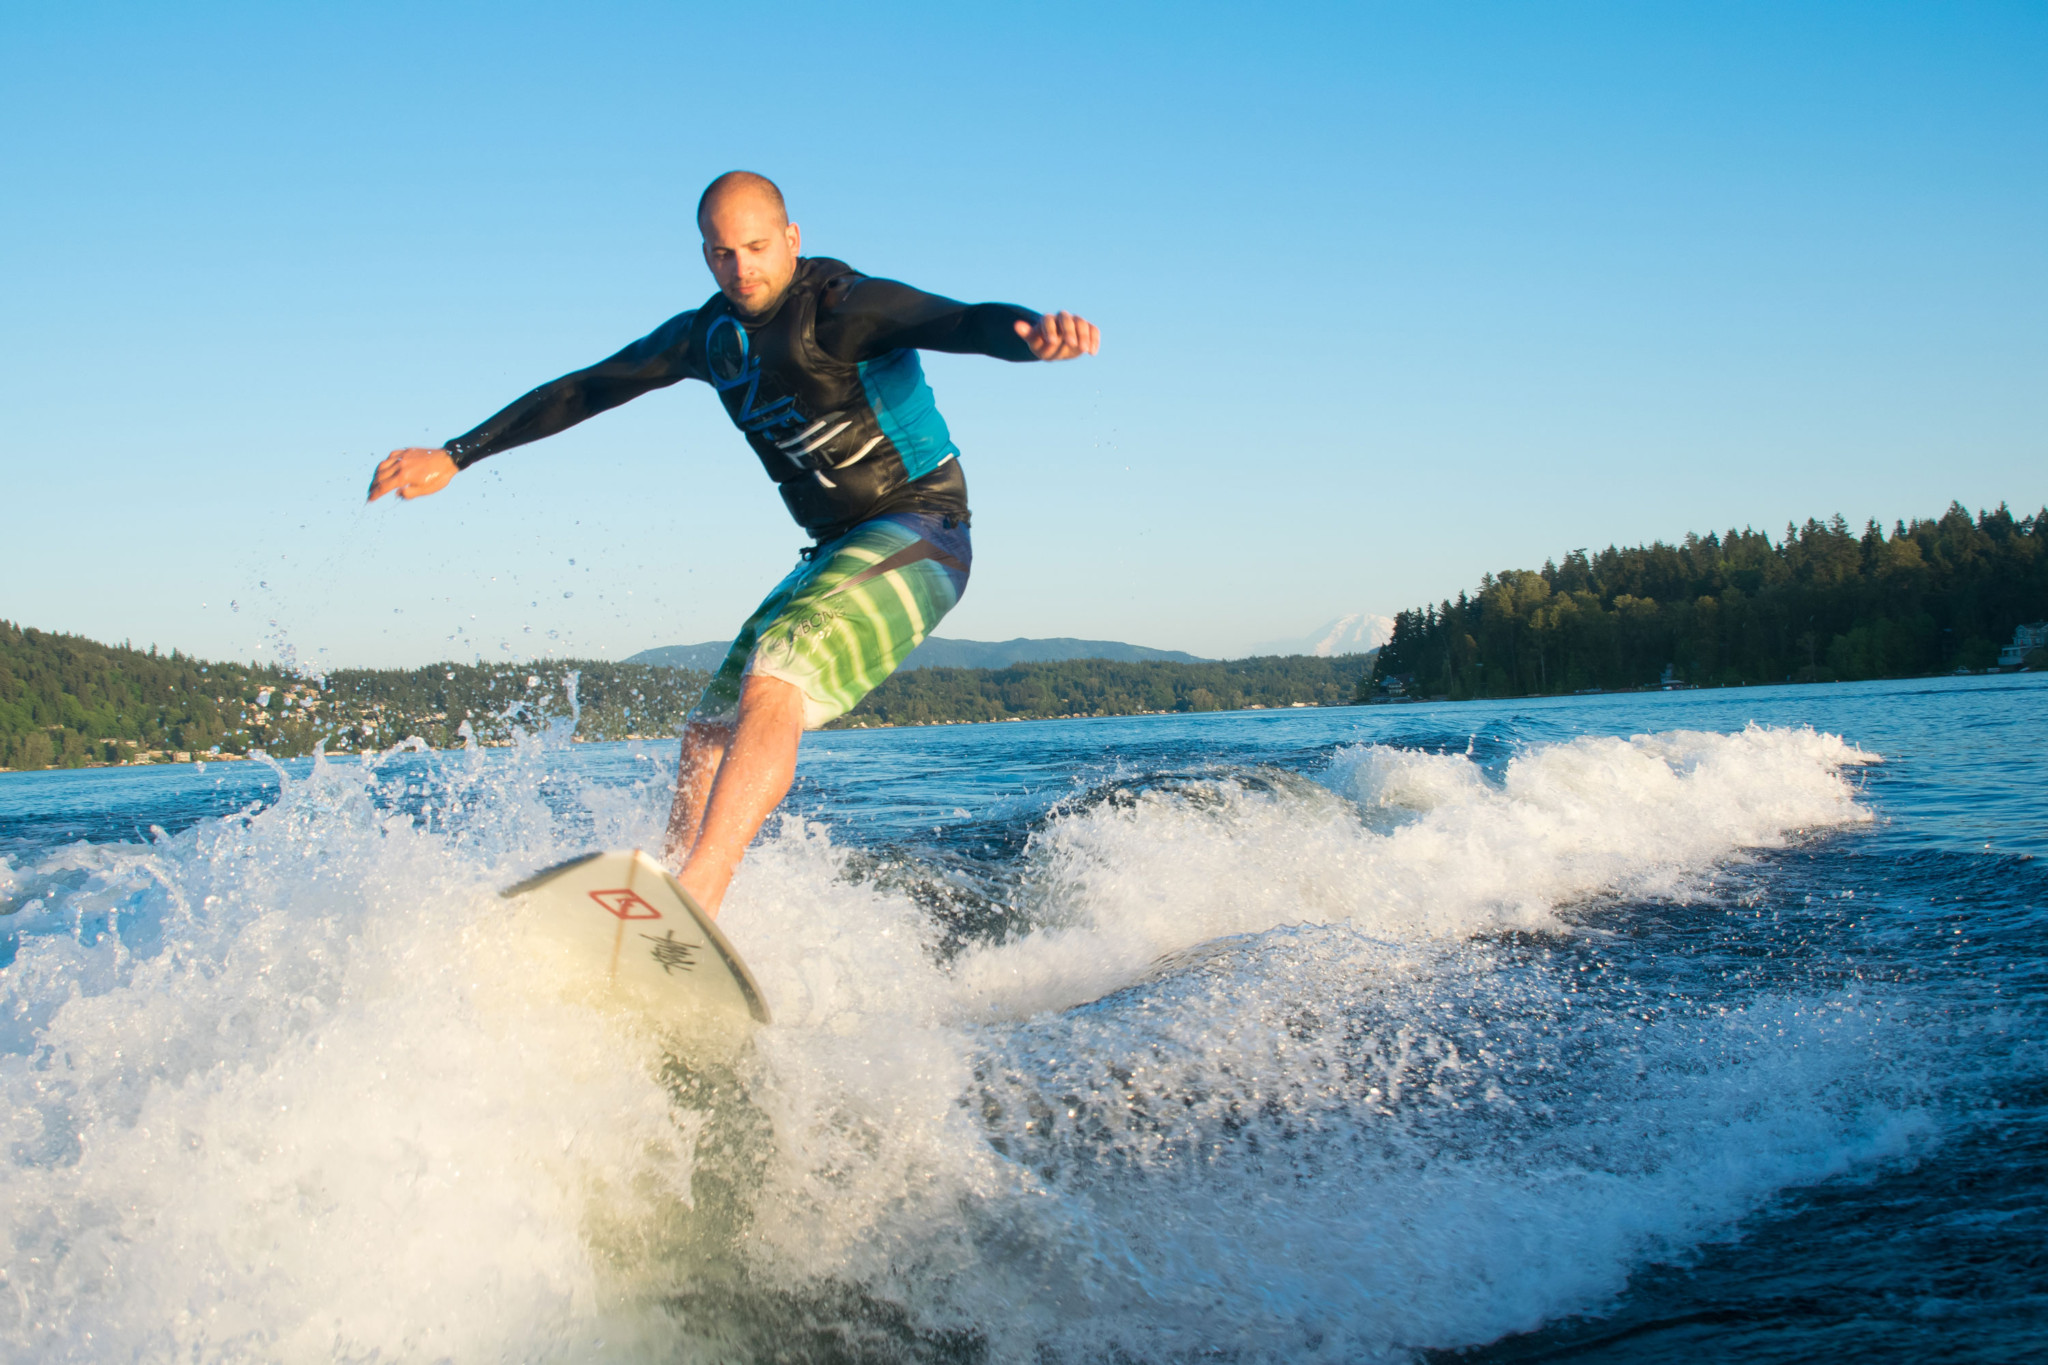 shred-for-brad-lake-sammamish-8